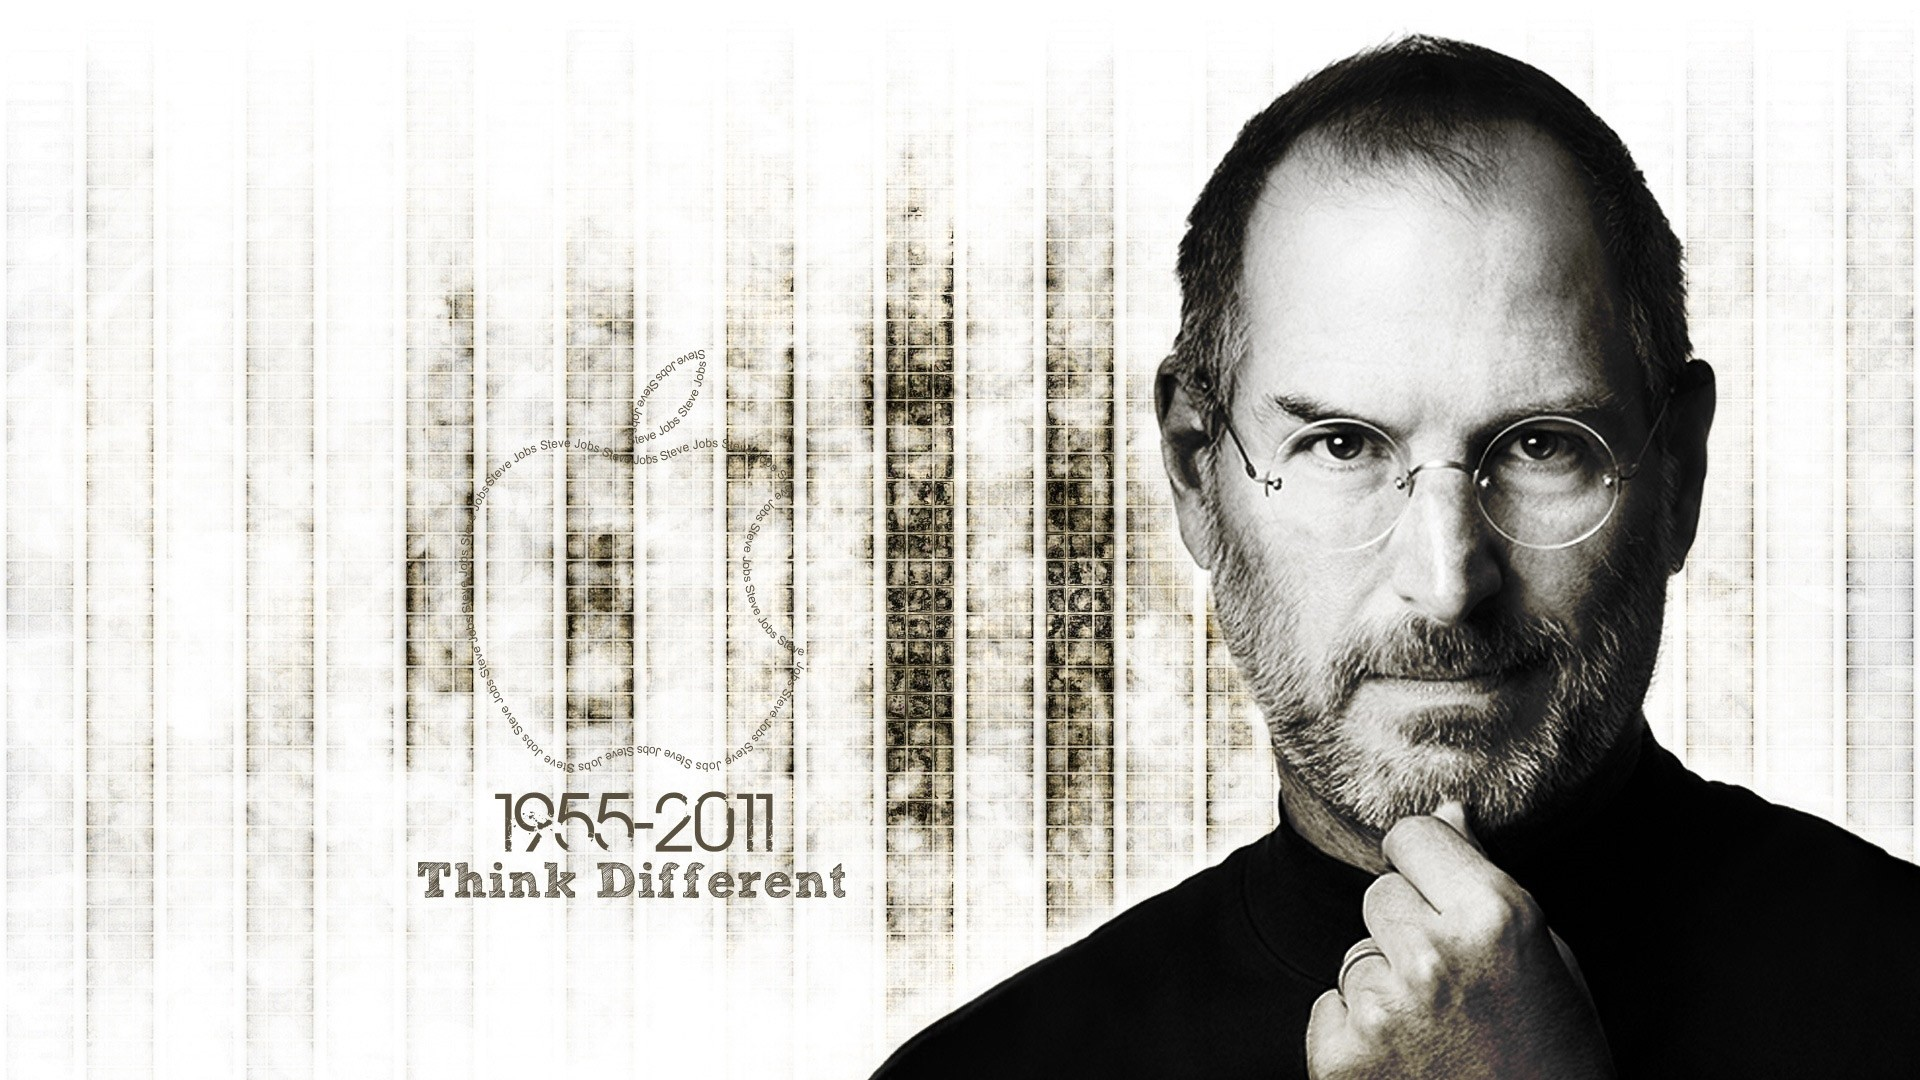 Steve Jobs wallpaper and themes